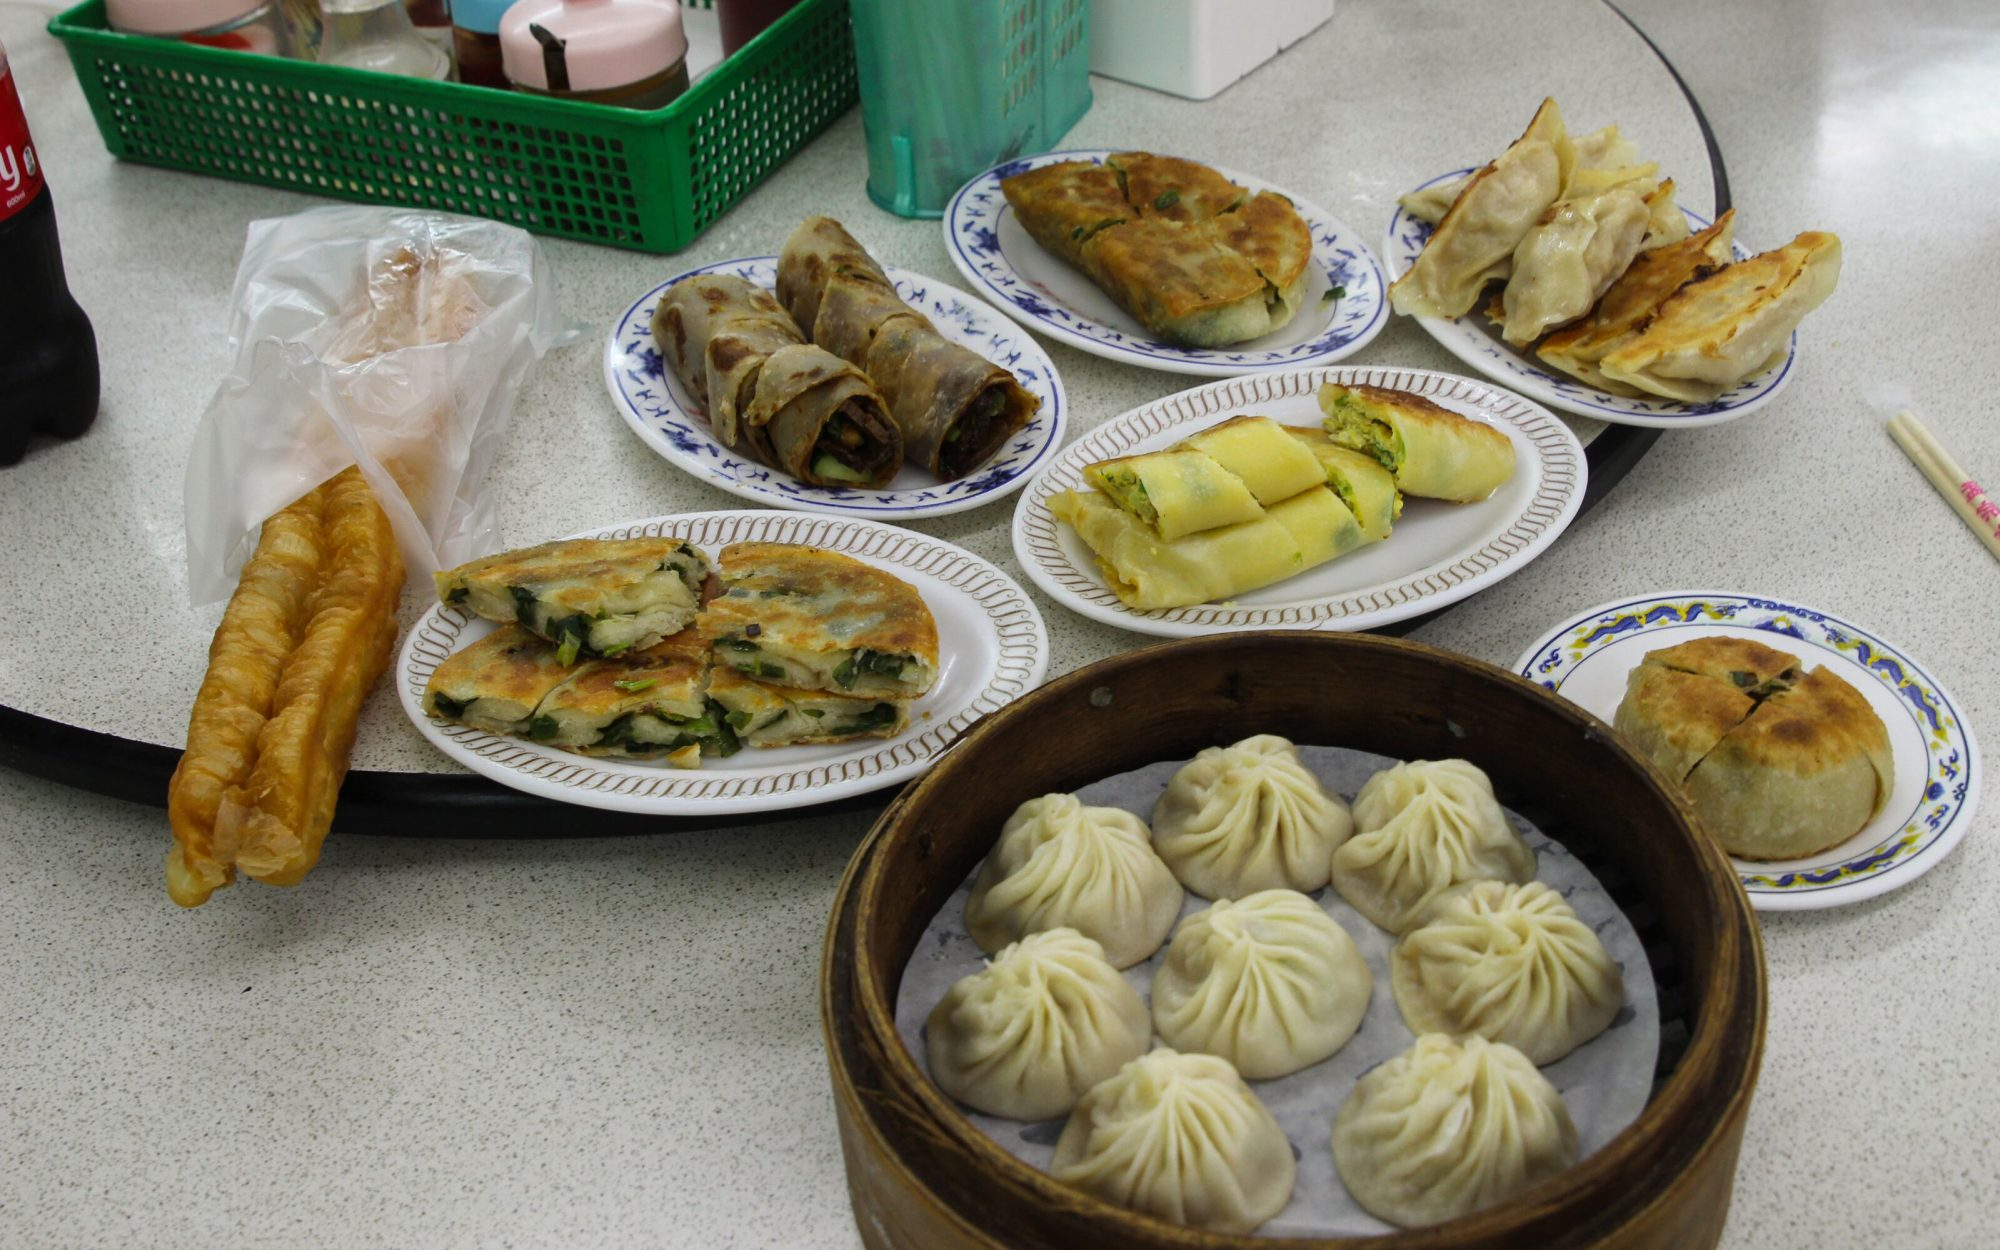 Taiwanese Takeout: Dishes